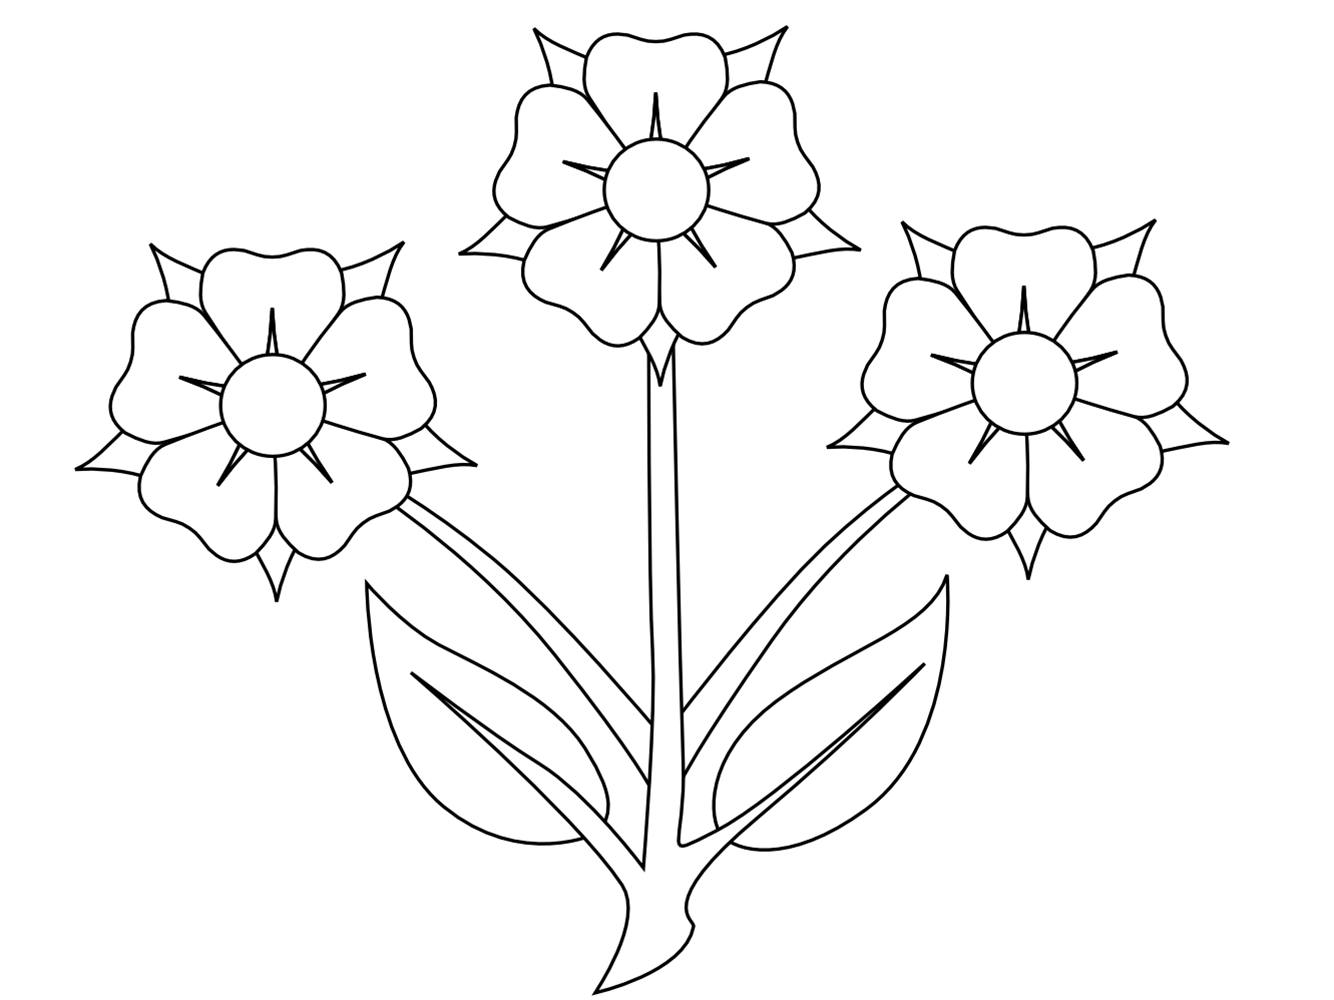 free black and white clipart of flowers - photo #36